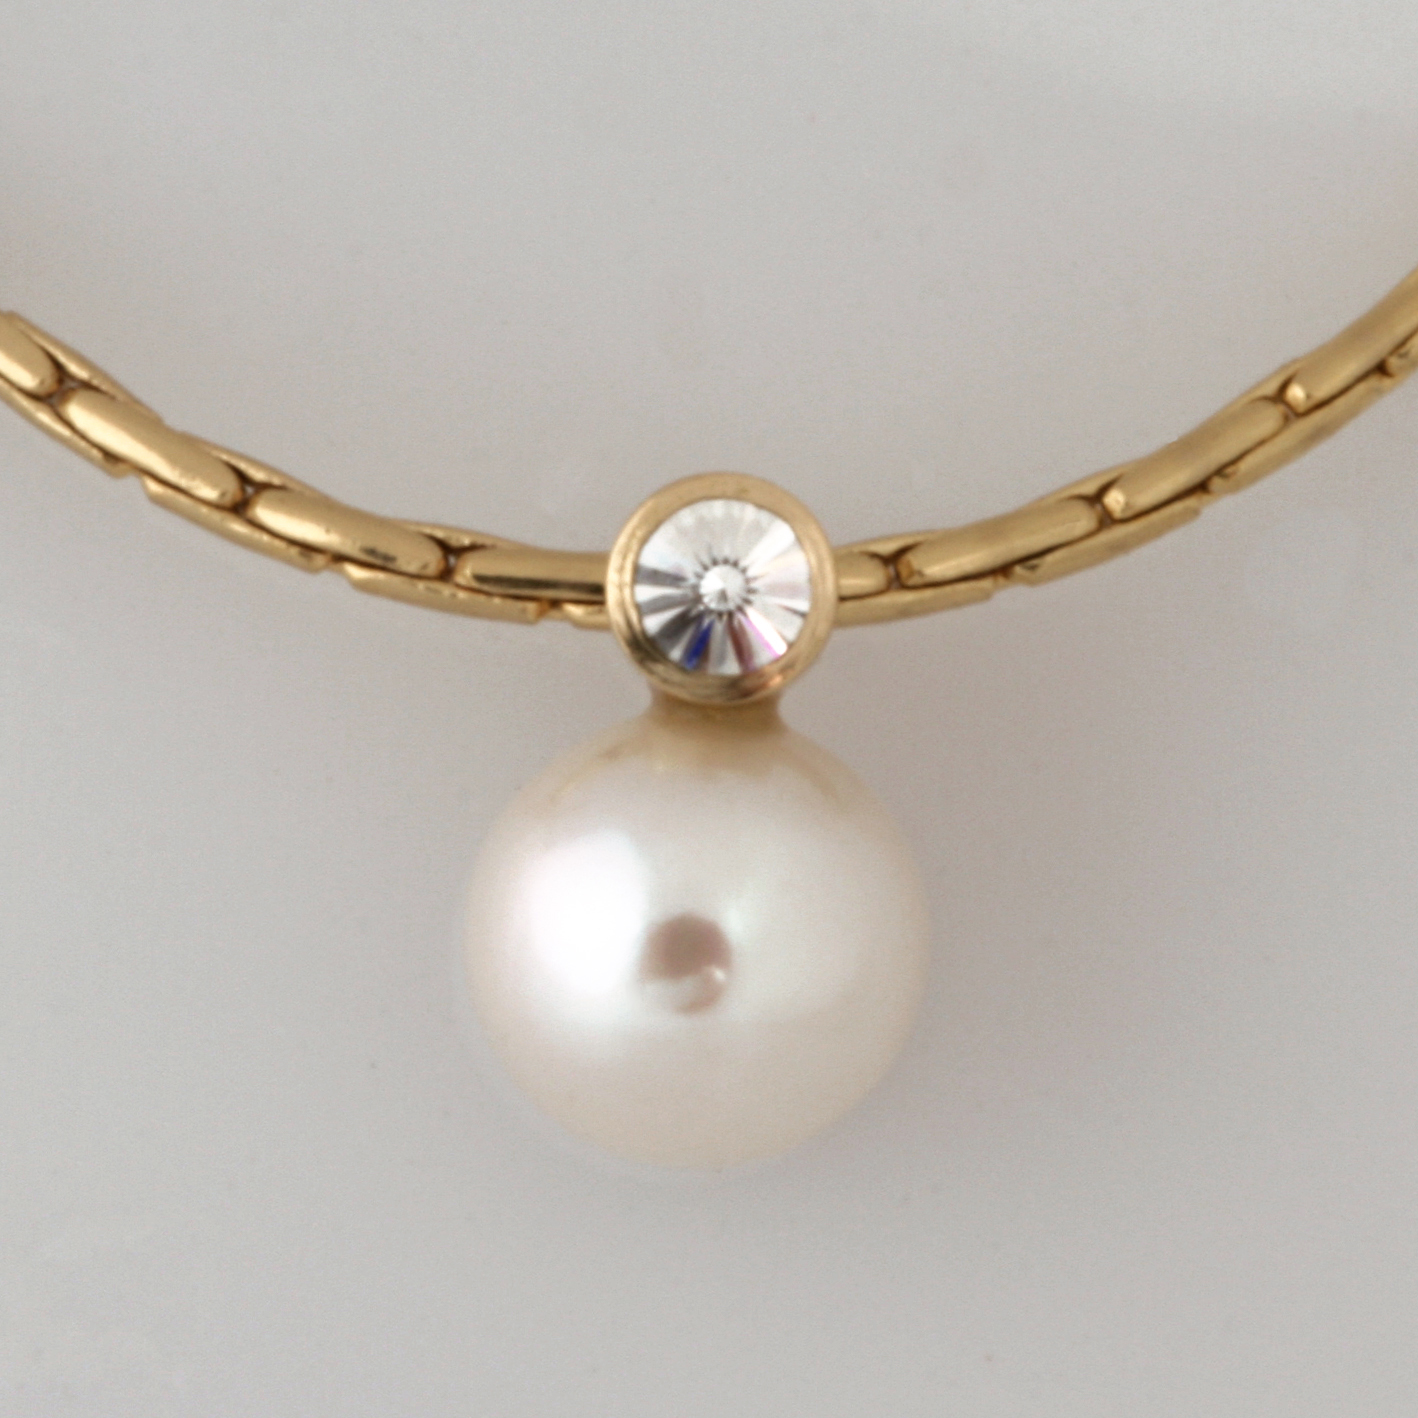 Handmade 18ct yellow gold pearl and 'Spirit' cut diamond pendant and 14ct yellow gold chain